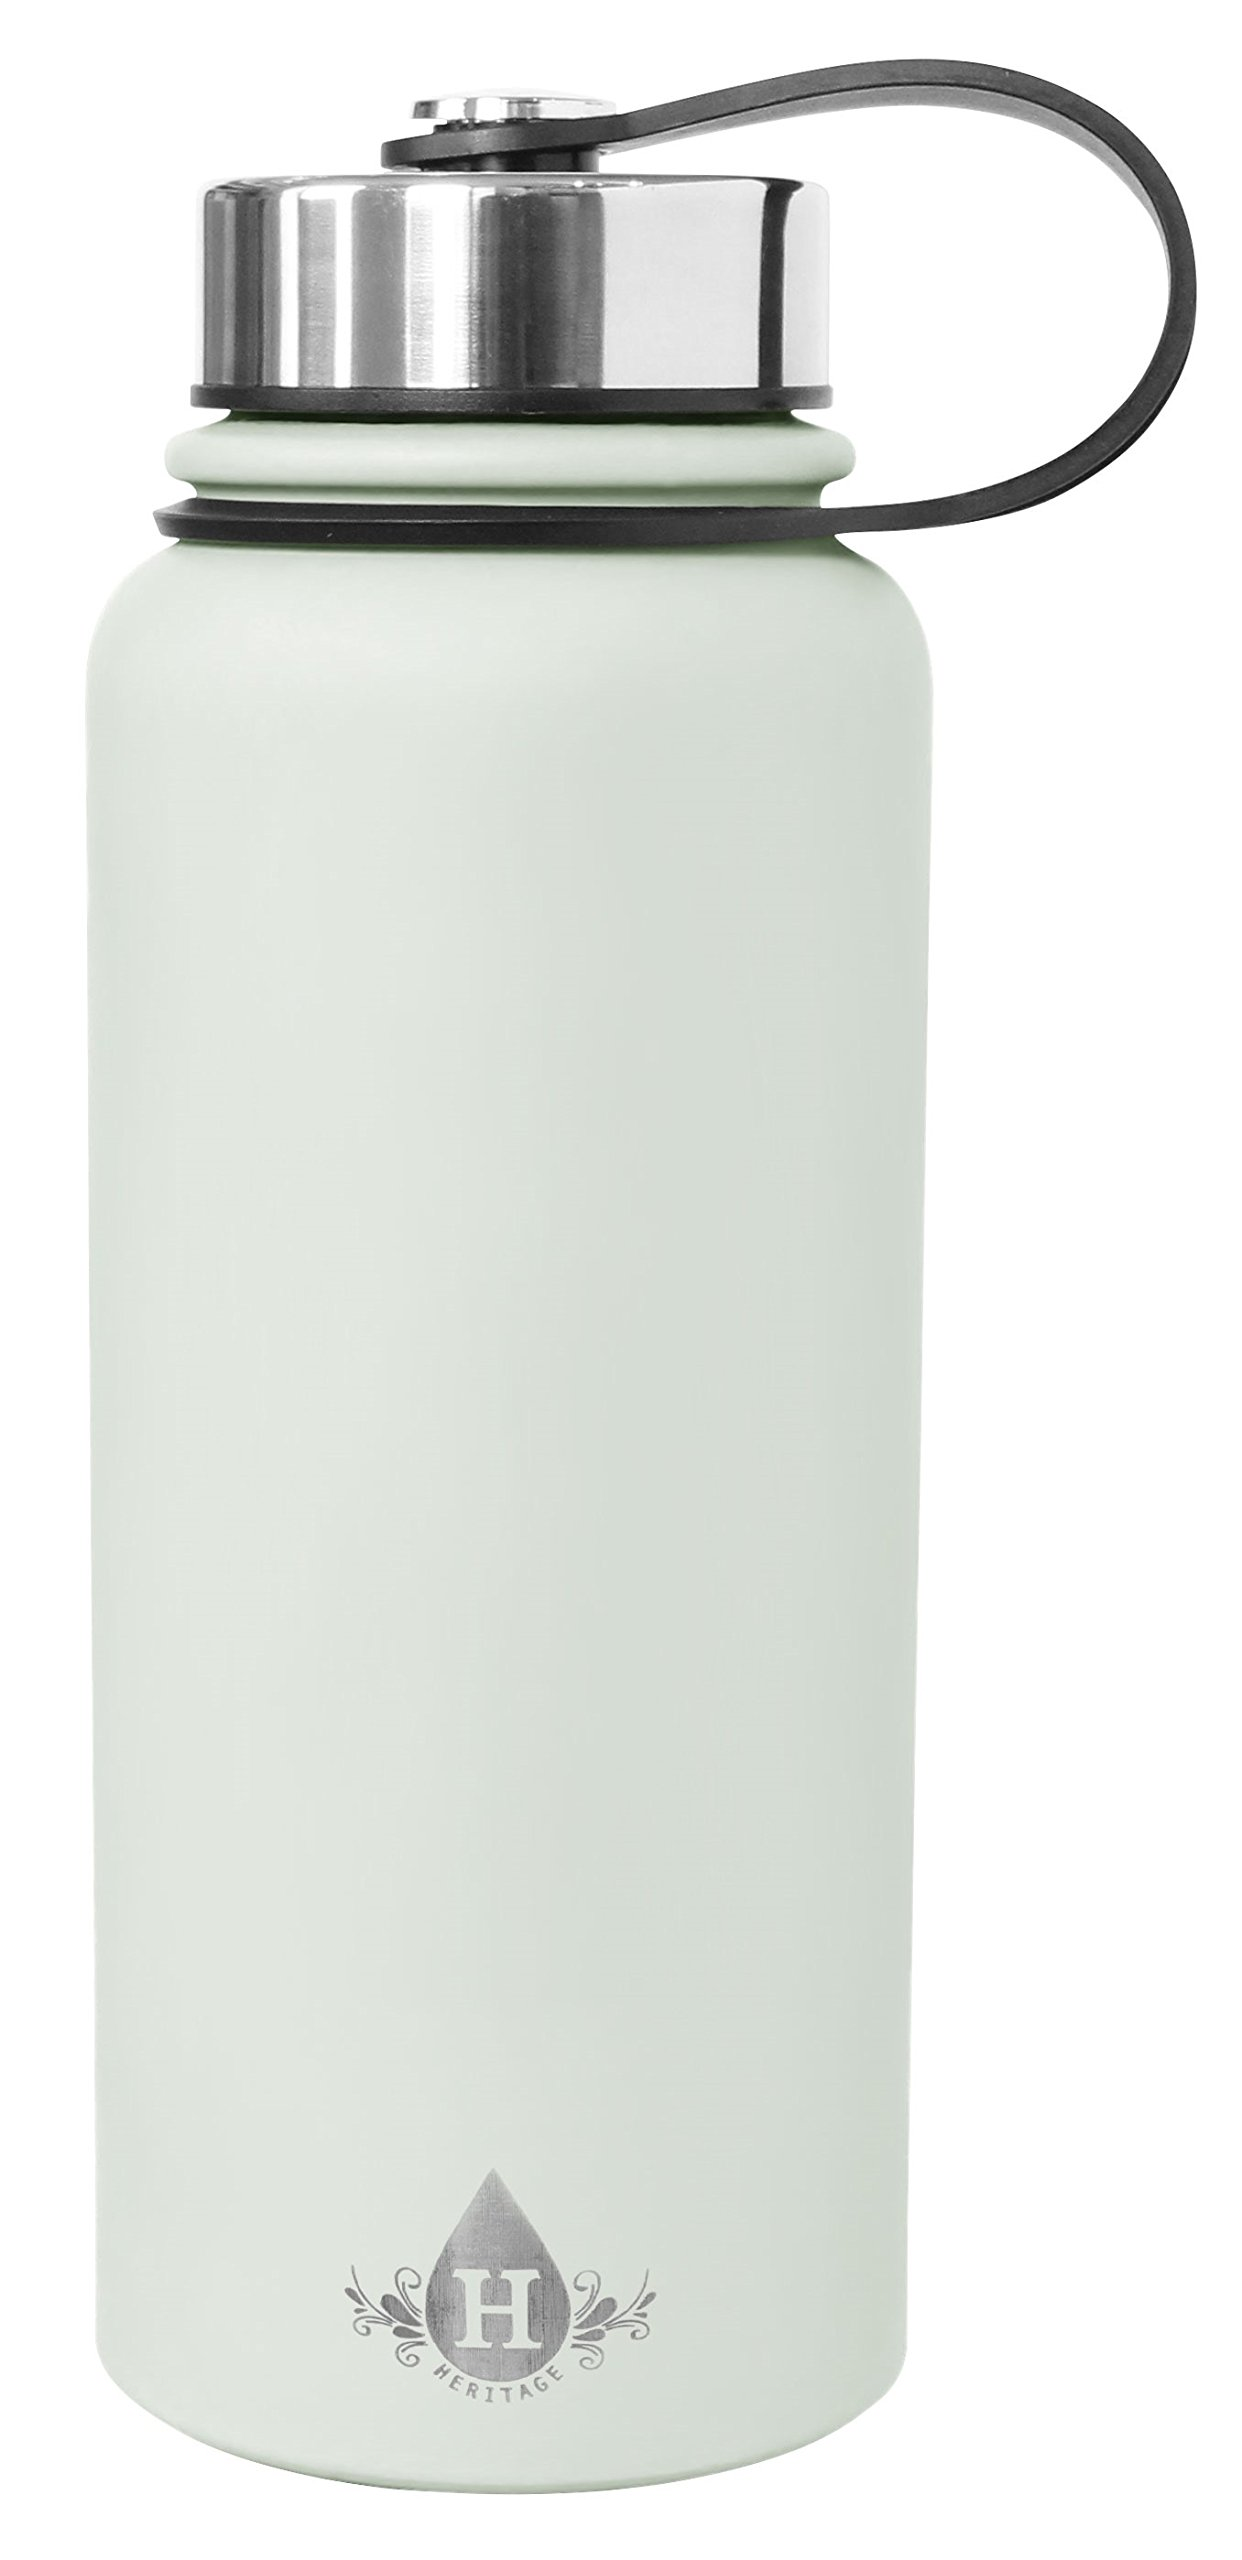 Gourmet Home Products 185148 30oz Double Wall Stainless Steel Vacuum Insulated Flask Wide Mouth Bottle Water, 30 oz, Spa Blue